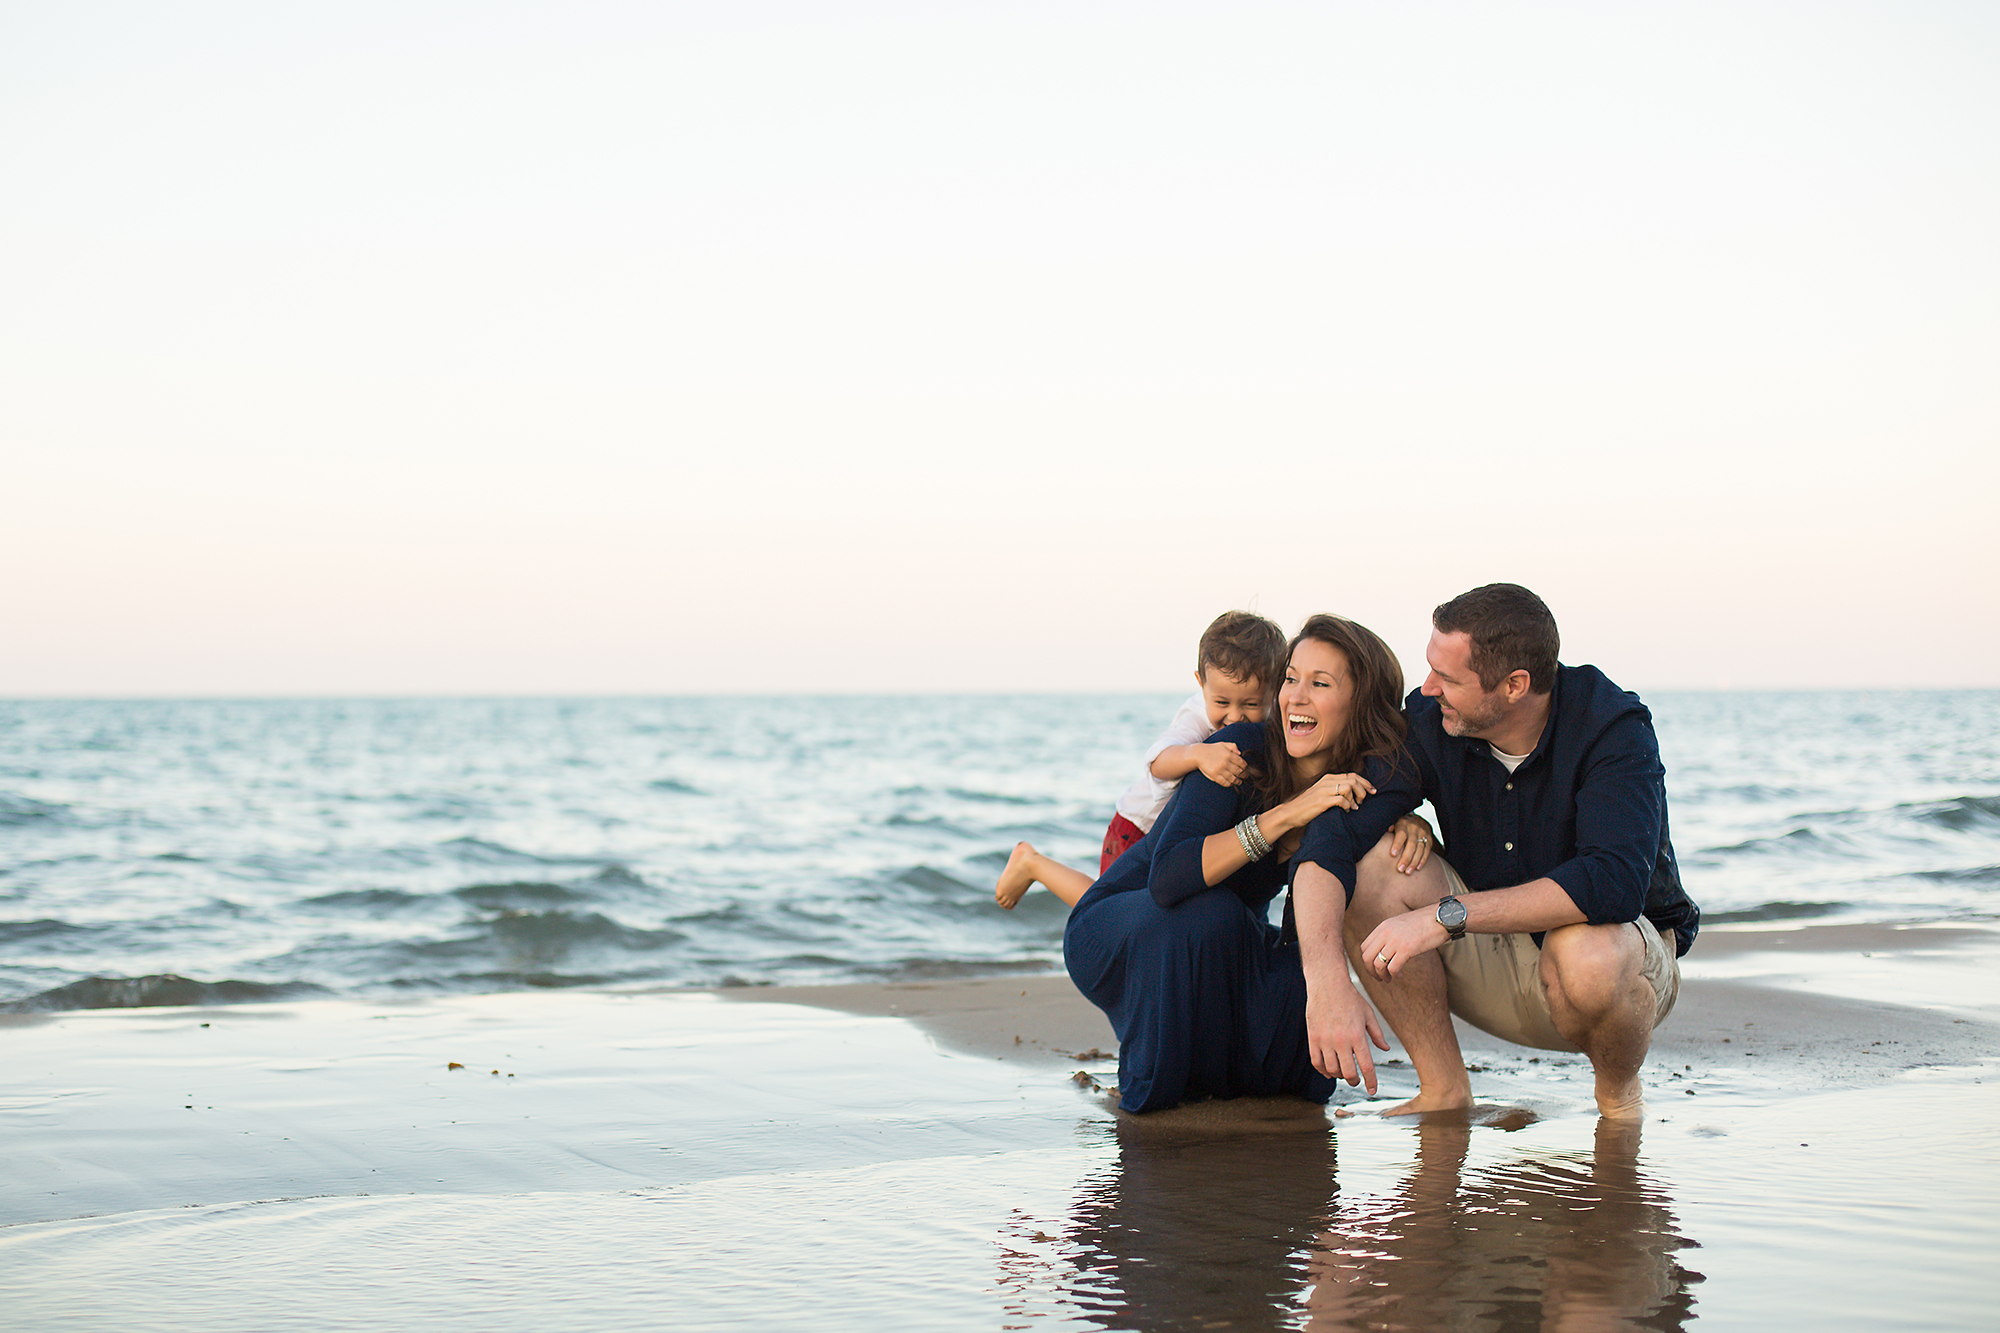 Bethany_Brinkworth_Photography-Family-Beach.jpg